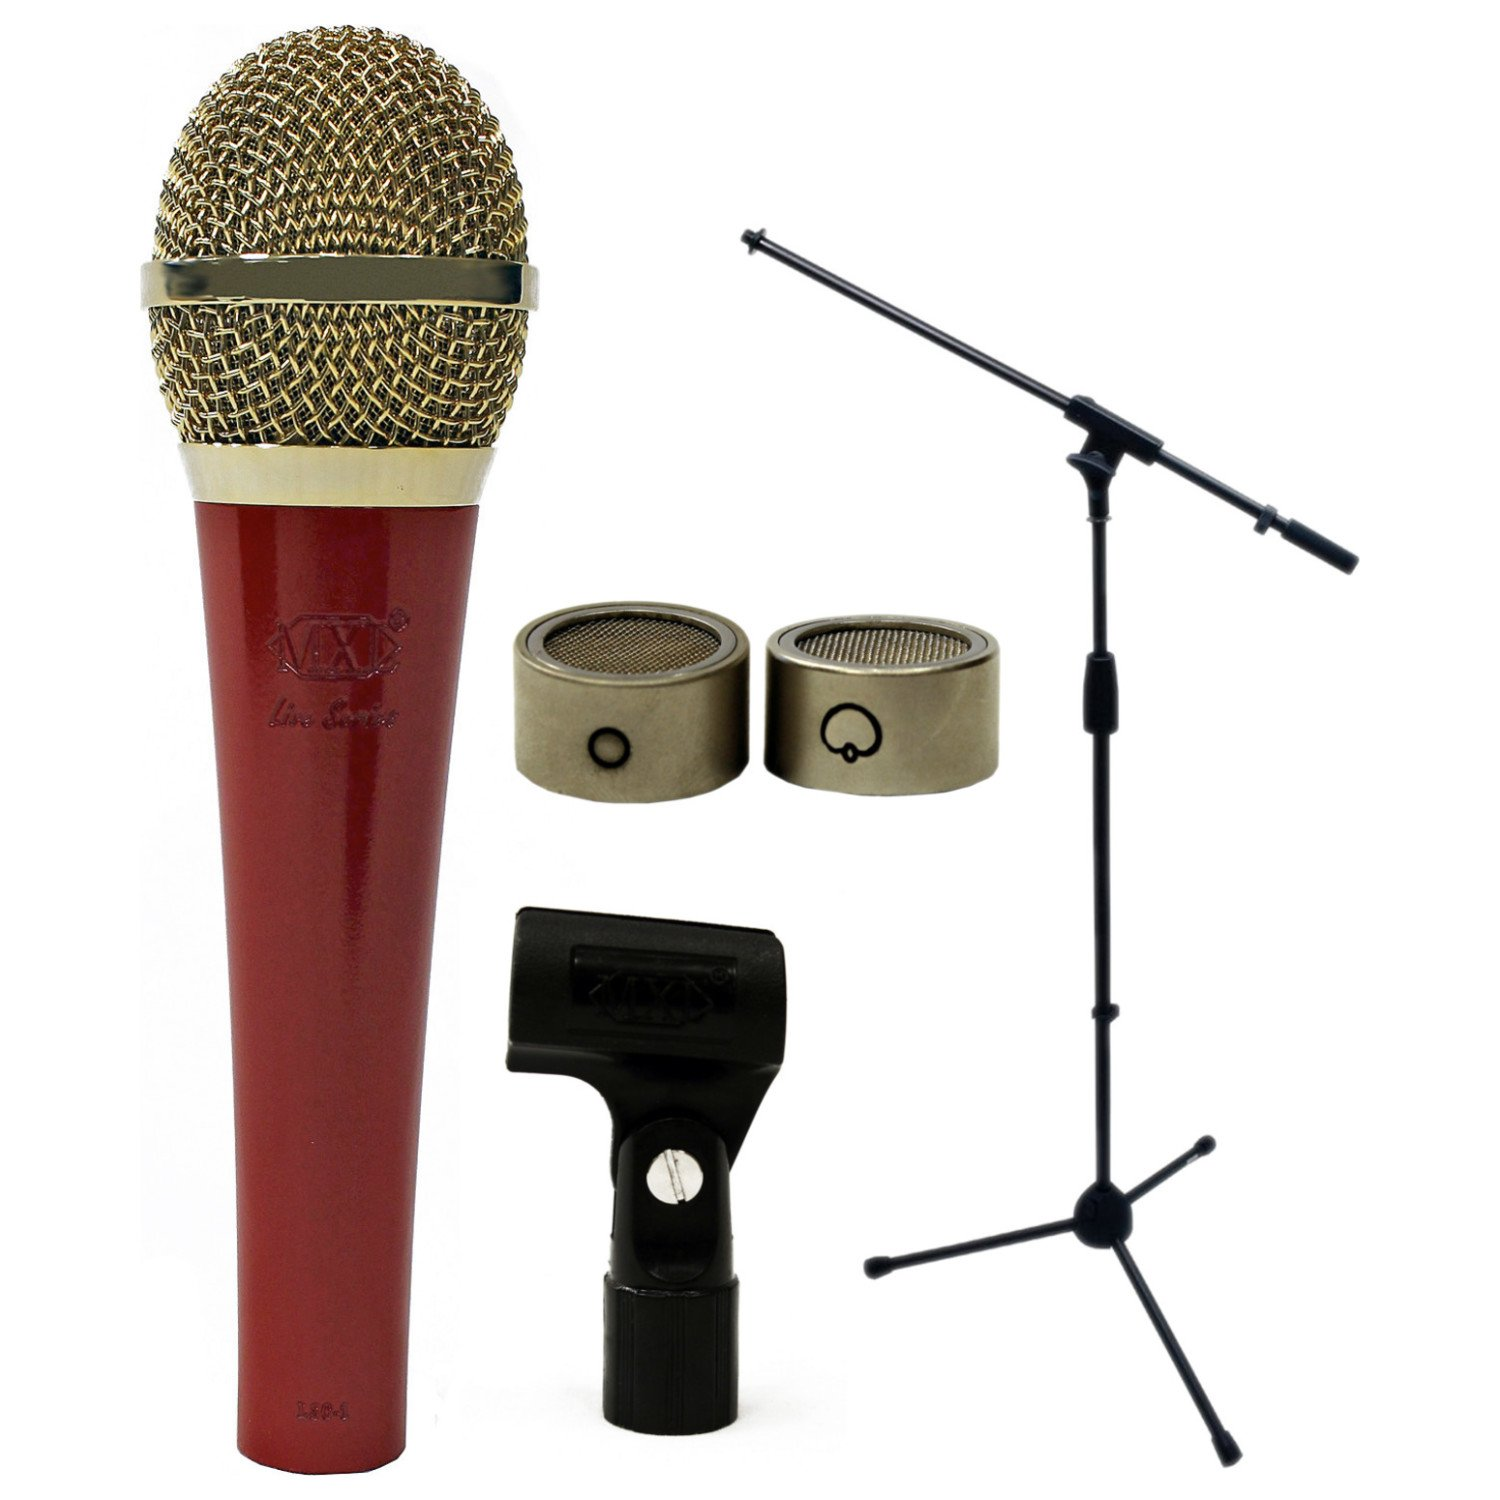 MXL LSC-1RG Live Series Red Body with Gold Grill Condenser Mic w/ Stand and Cable LSC-1RG BUNDLE